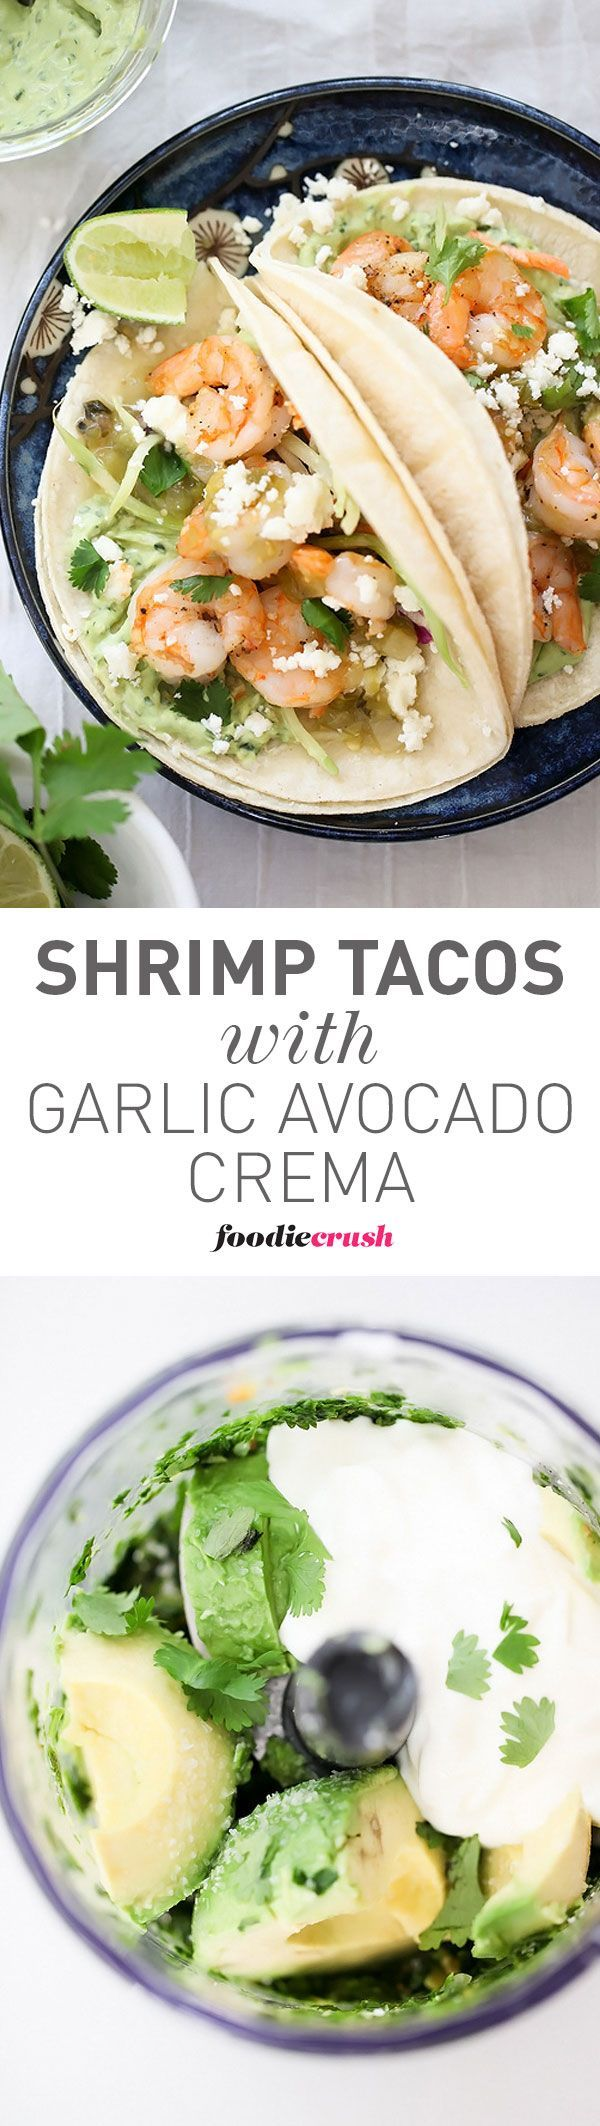 Garlic adds a flavorful touch to these shrimp tacos topped with salsa verde and an avocado cream sauce for an easy dinner | foodiecrush.com